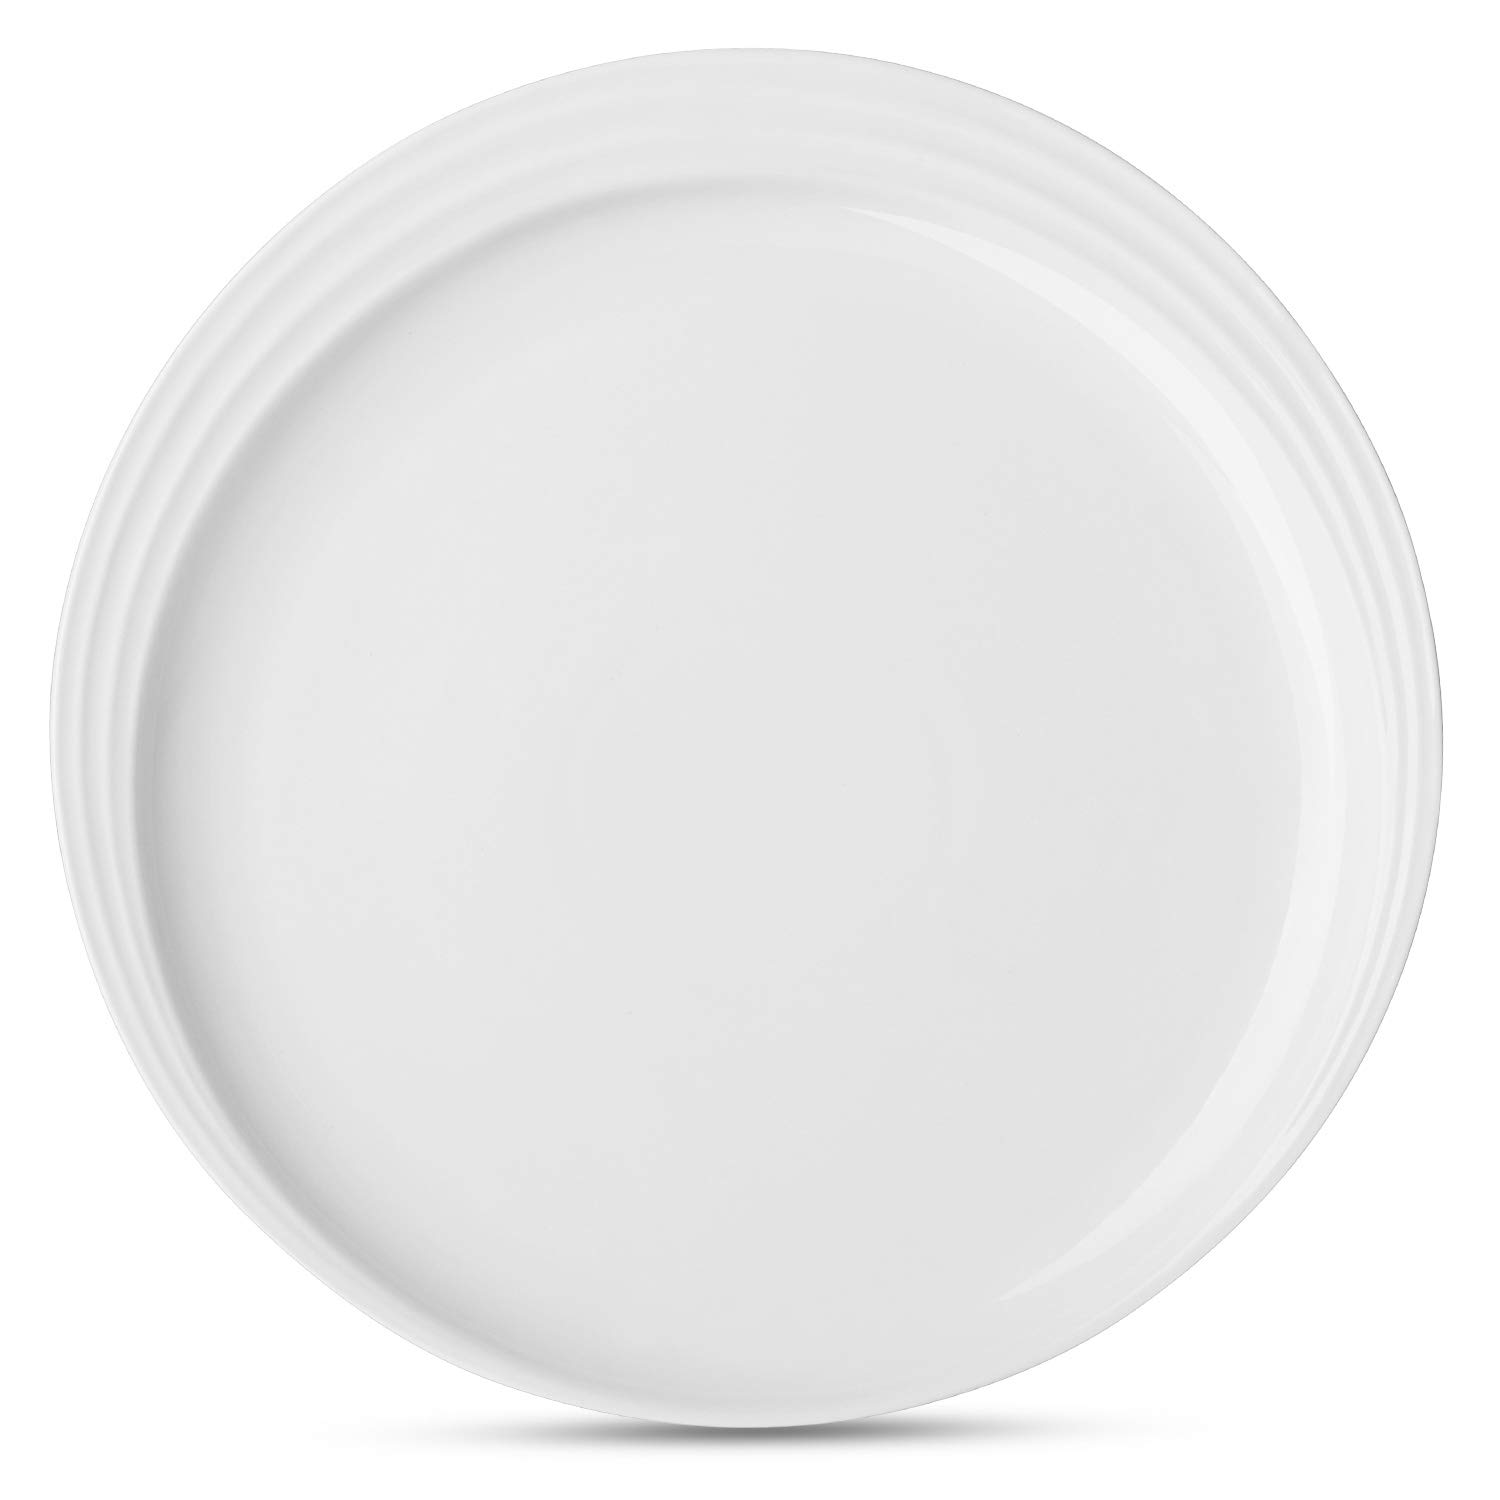 DOWAN 10 Inches Porcelain Dinner Plates Dessert Serving Platters Set of 6 - White